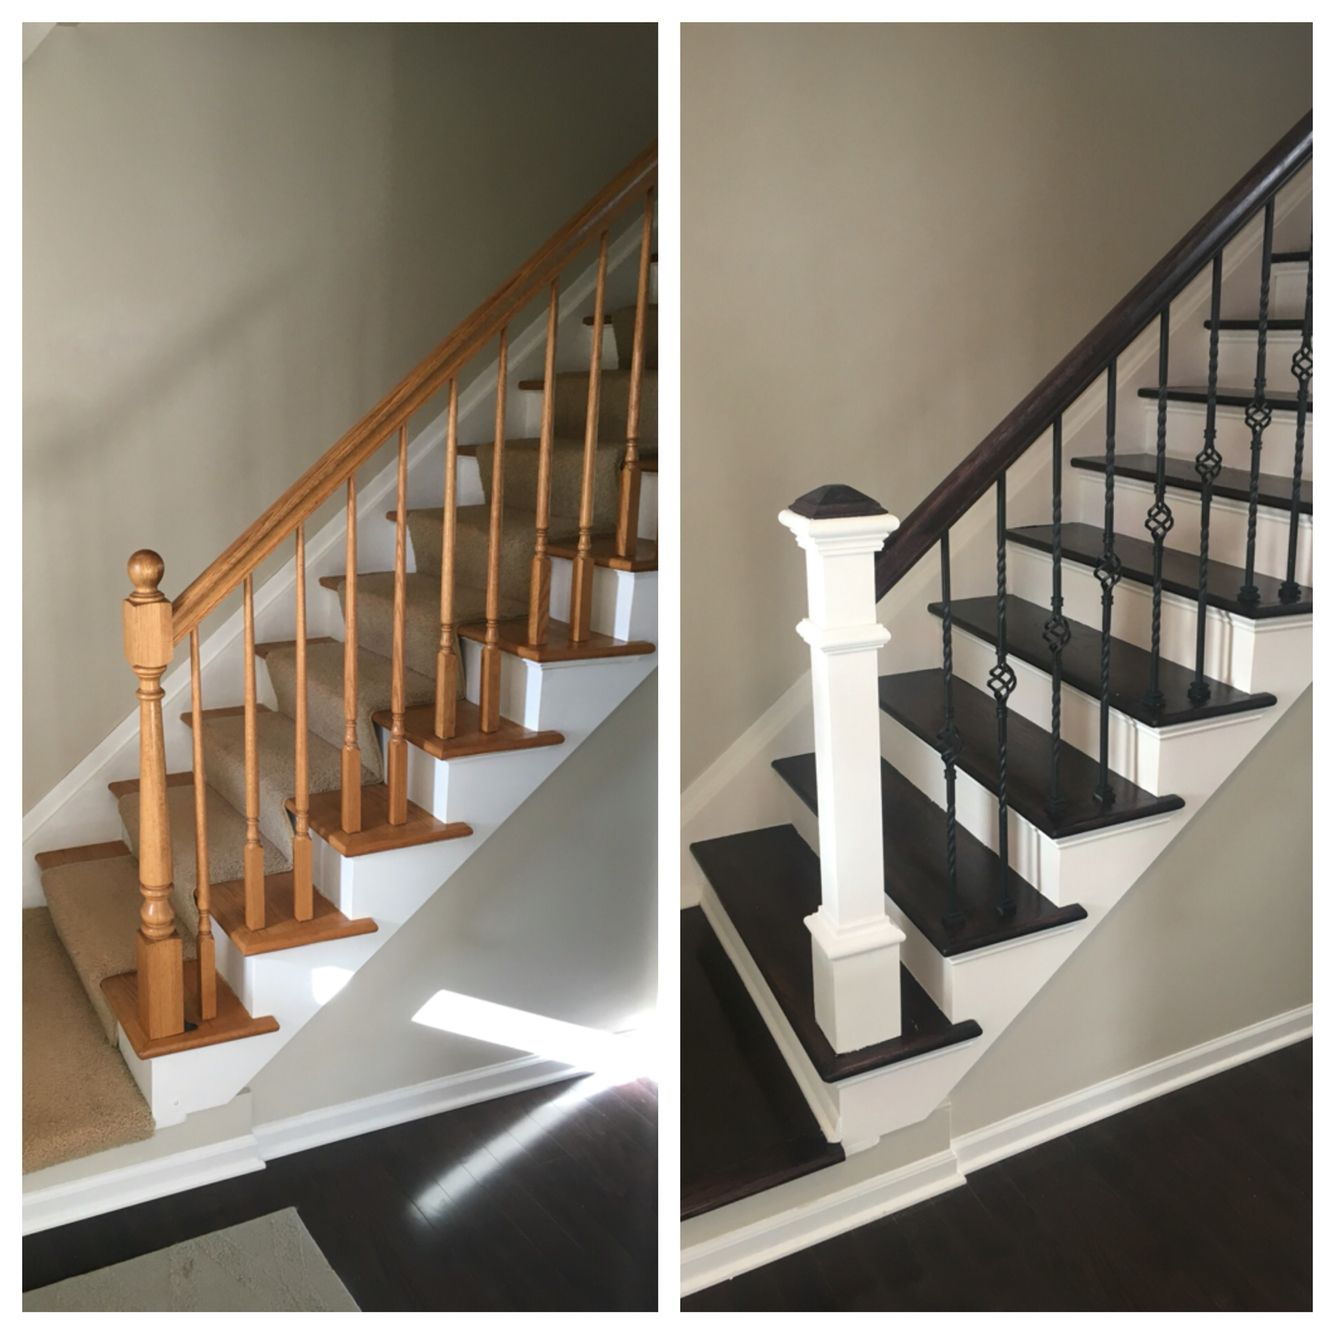 Renovating Stairs Wrought Iron Wood Floor Finishing